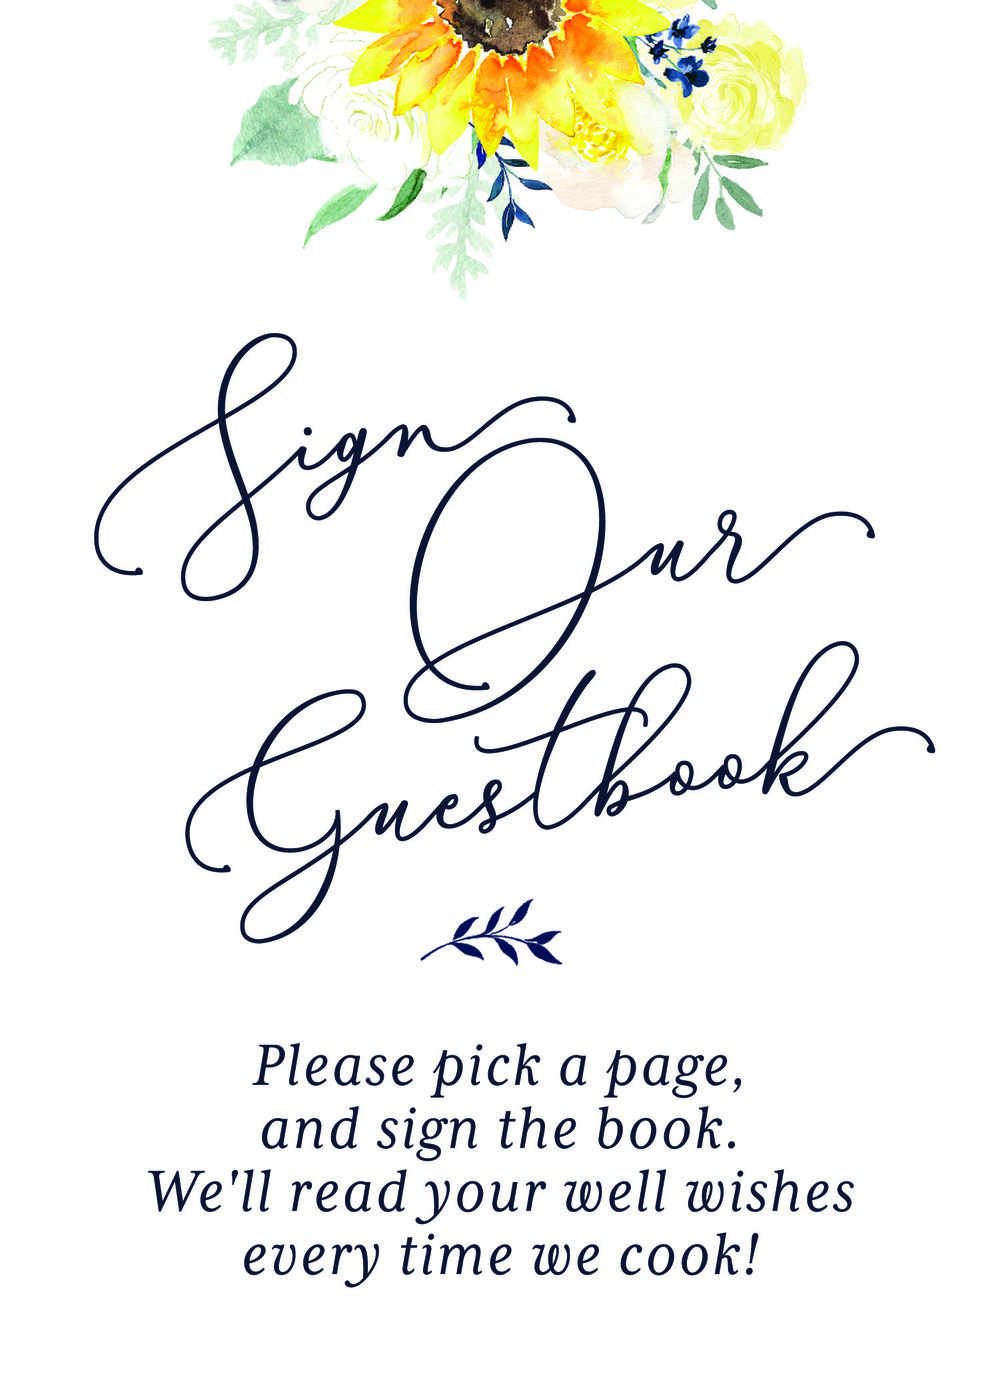 GUEST-BOOK-SIGN_8x10_Proof2.jpg